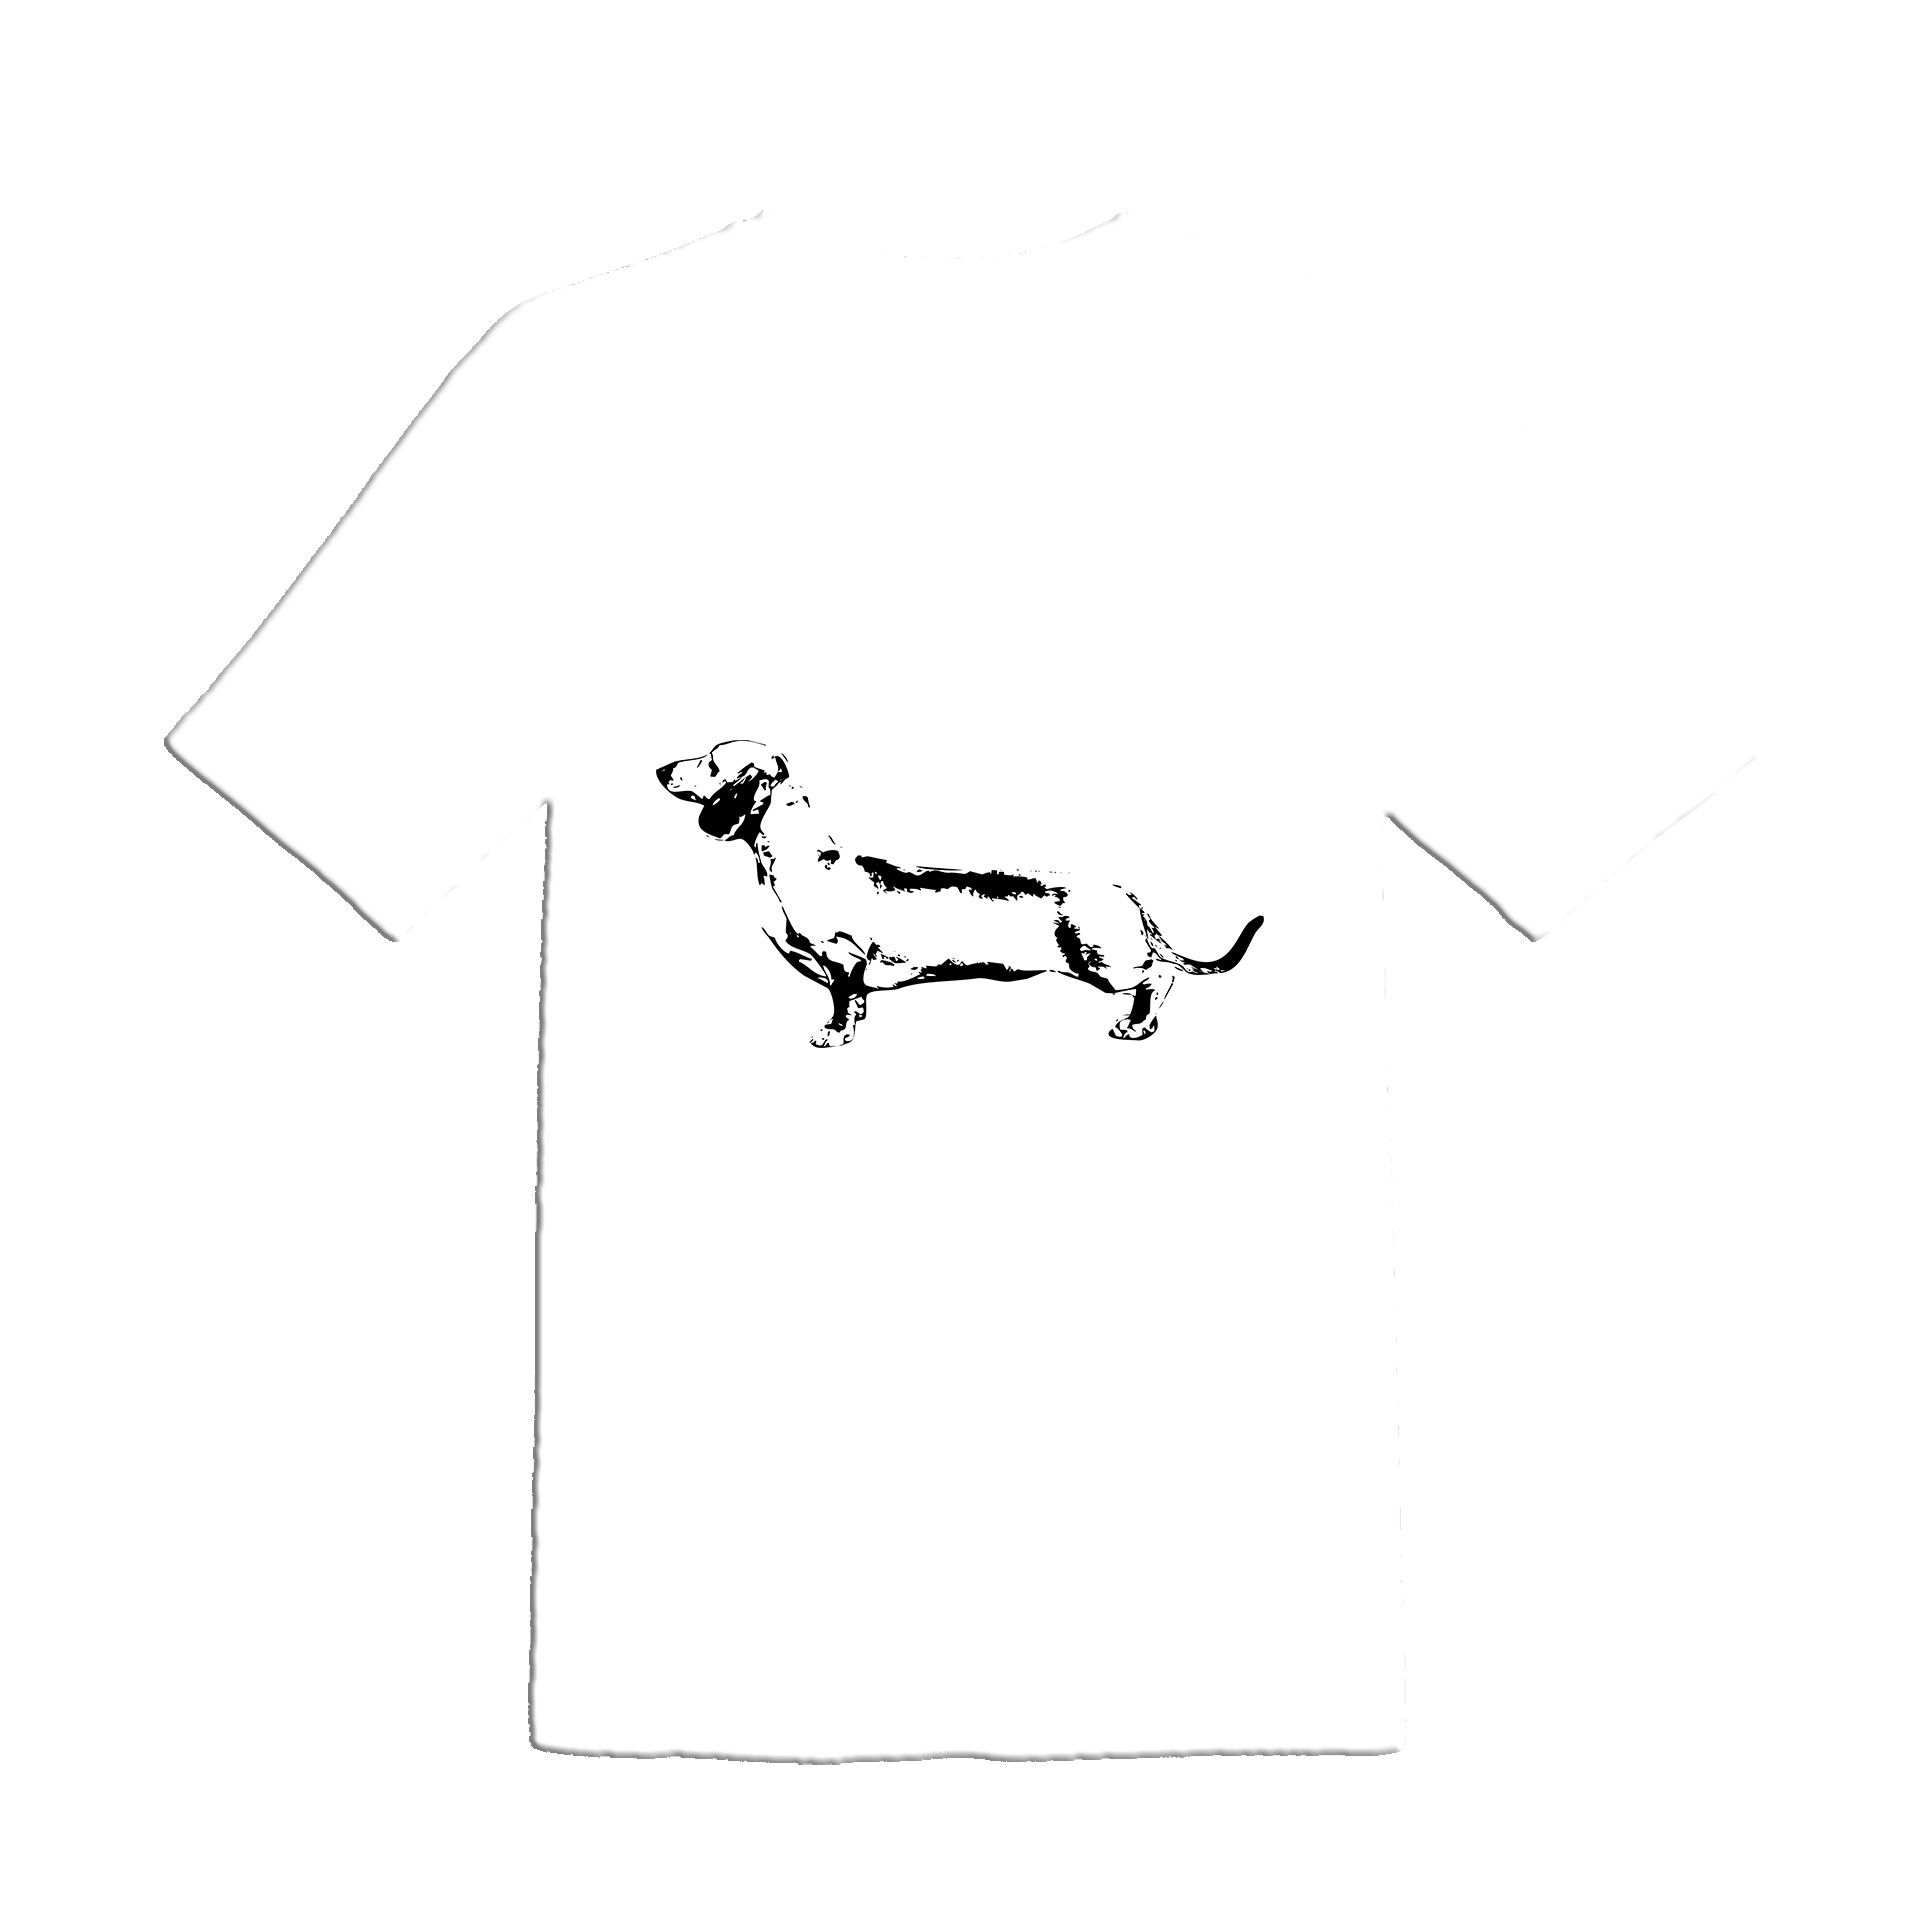 small resolution of dachshund outline stencil weiner dog vector art images for cut files or prints